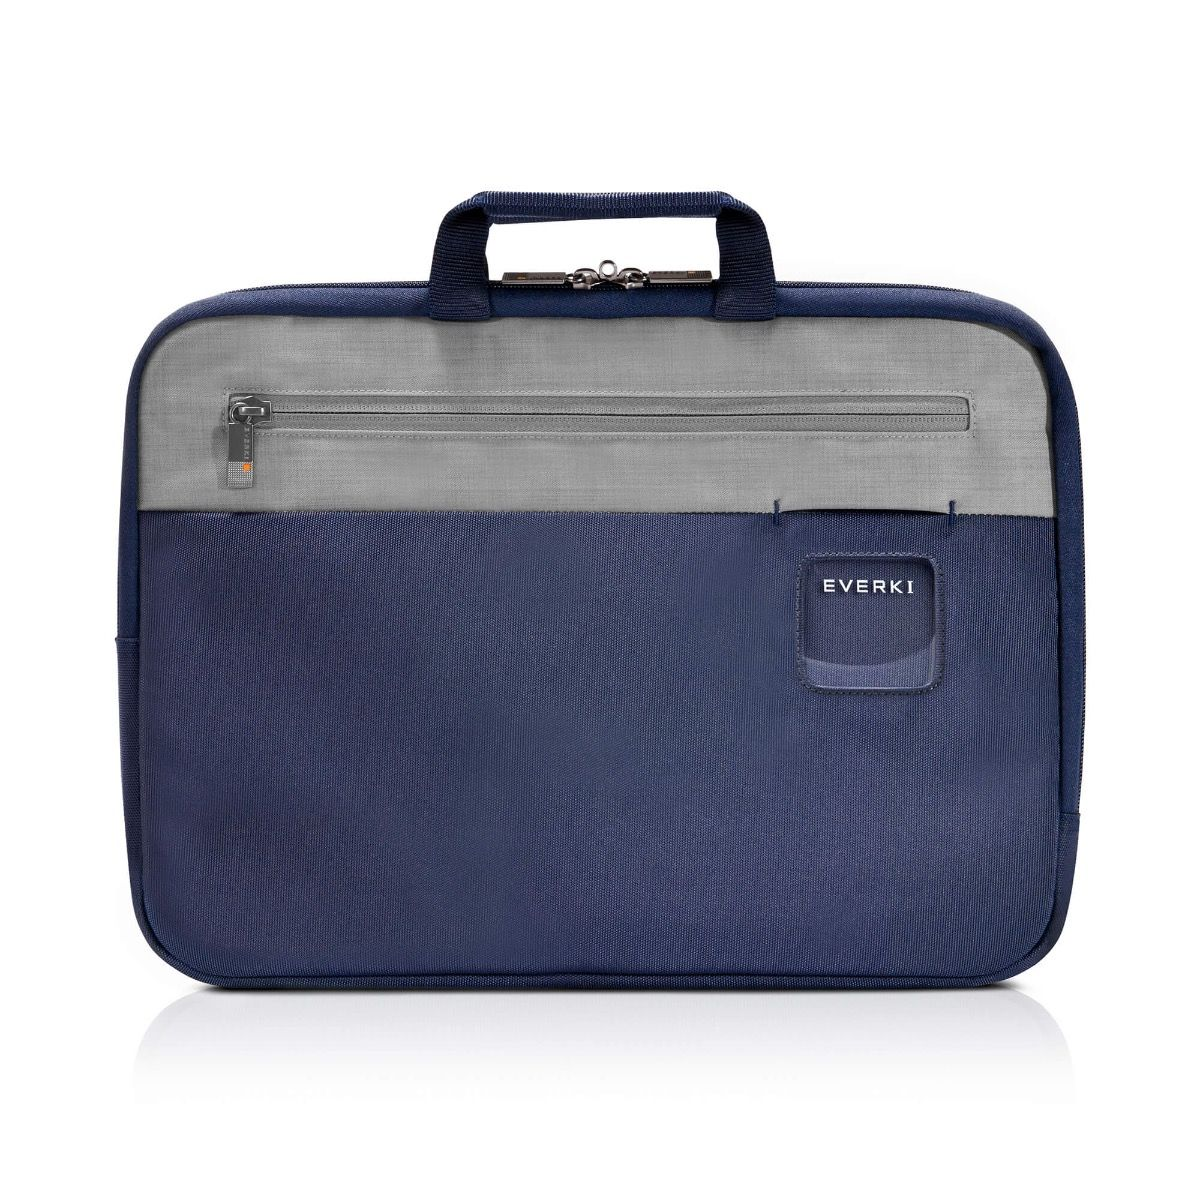 EVERKI ContemPRO 15 Inch Navy Laptop Sleeve